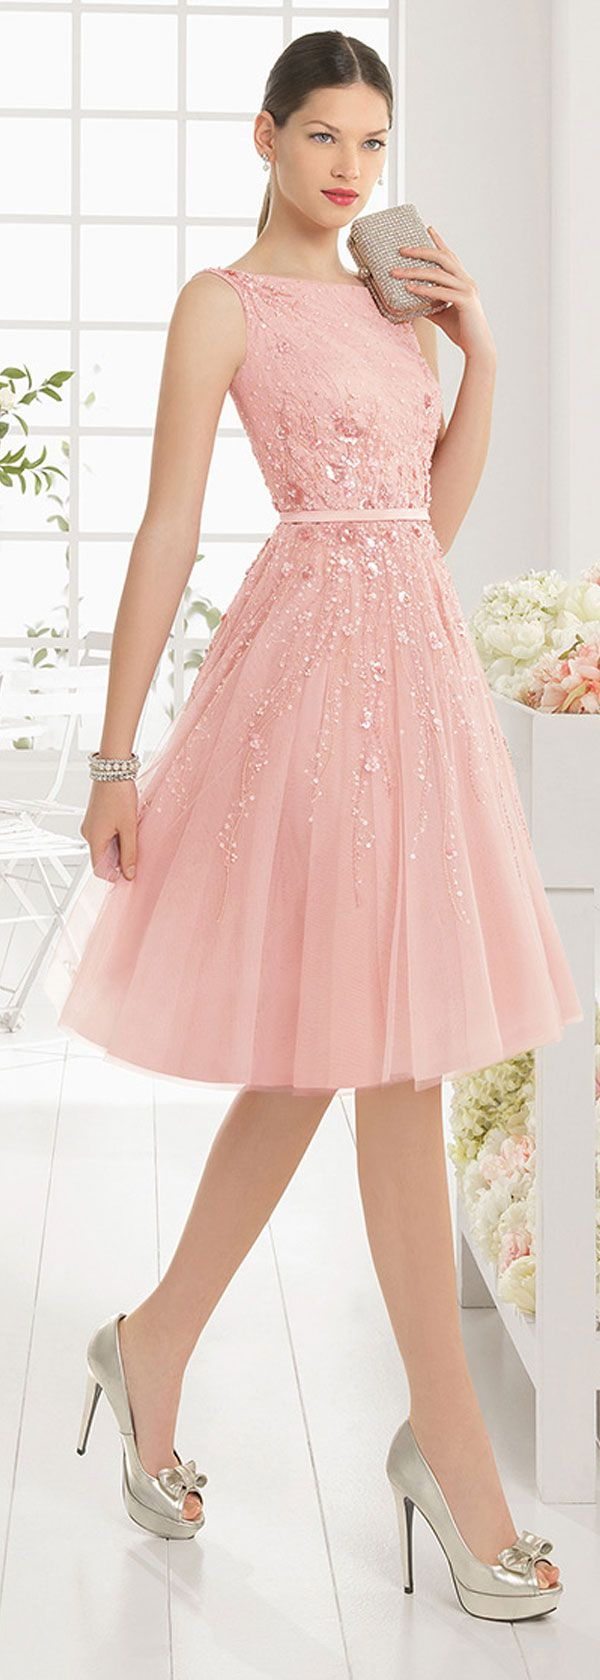 Pale pink dresses cocktail